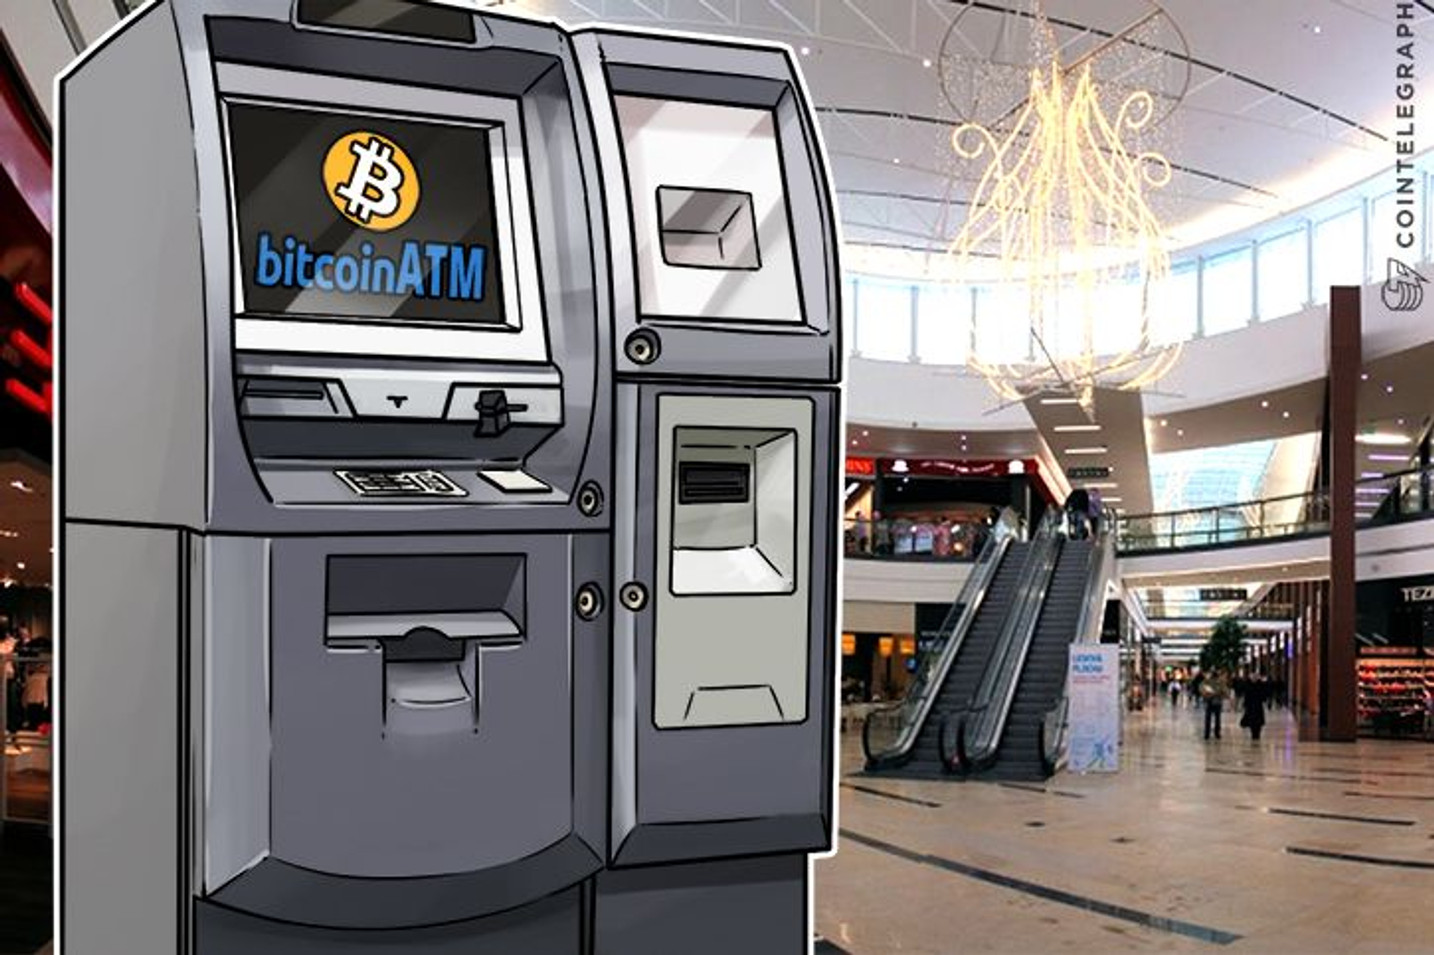 Coinsource Installs 20 New Bitcoin ATMs in Georgia